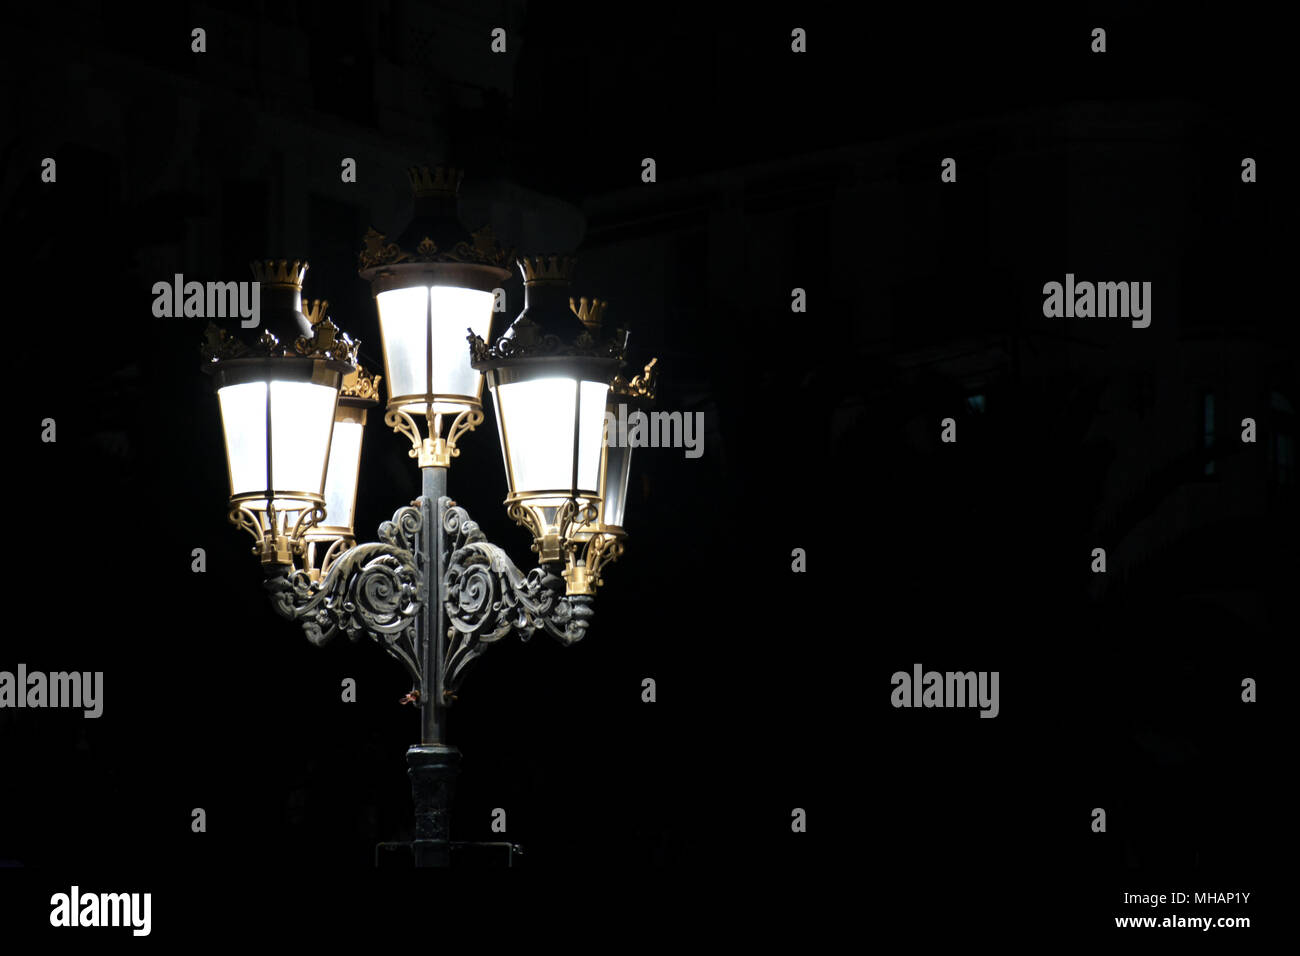 Streetlight in city of Algiers. - Stock Image